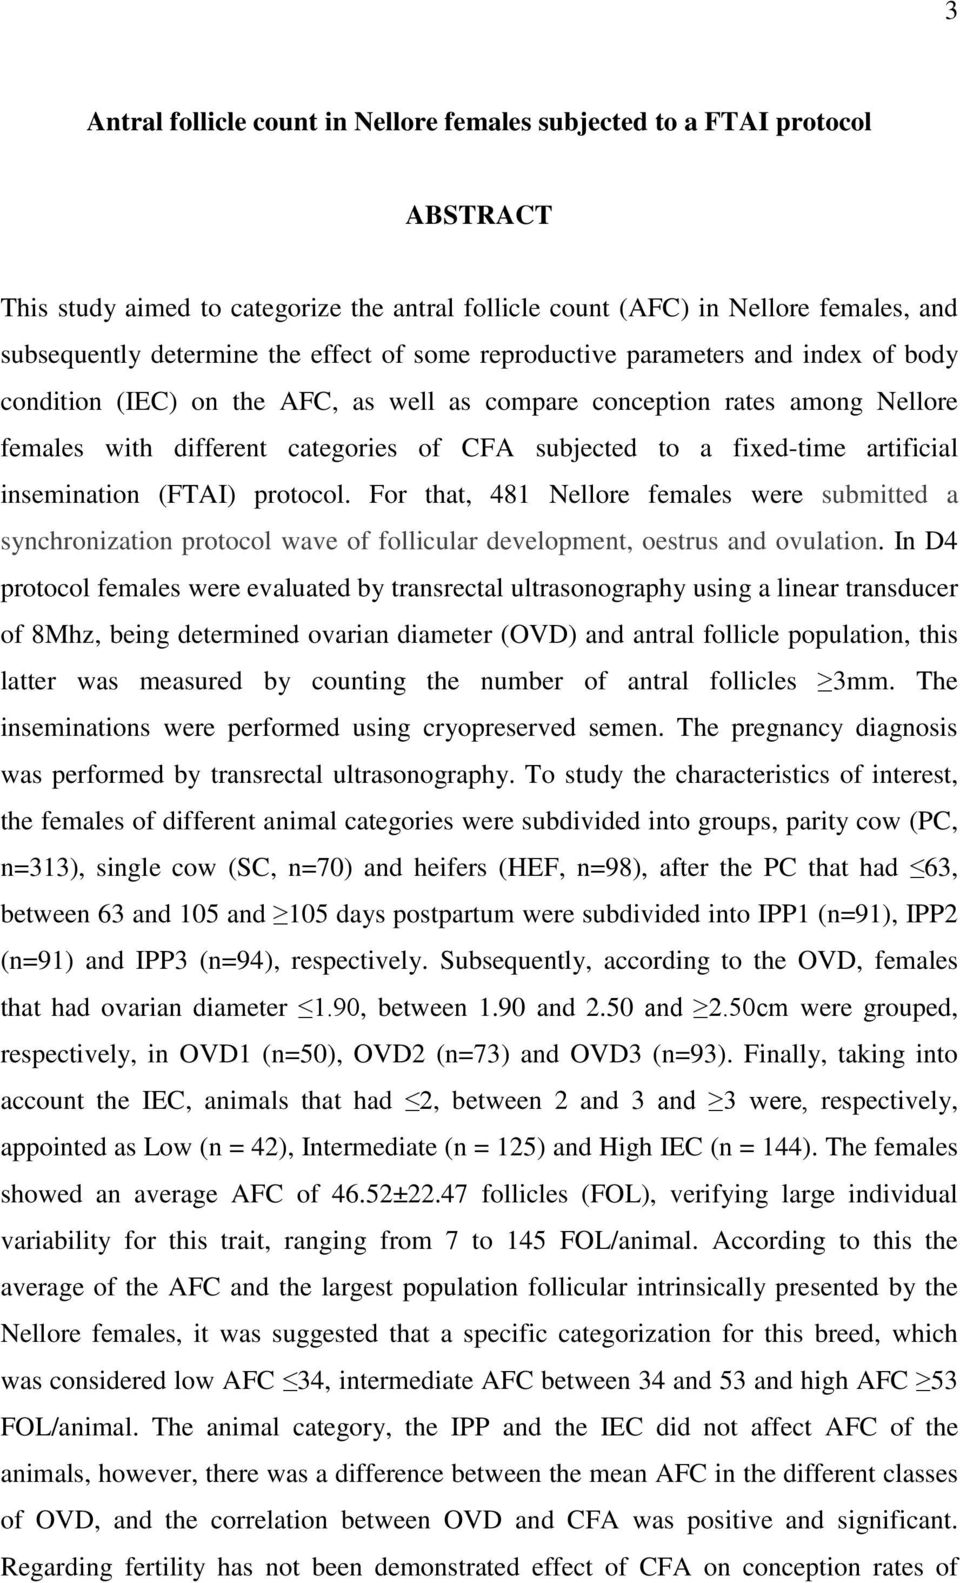 fixed-time artificial insemination (FTAI) protocol. For that, 481 Nellore females were submitted a synchronization protocol wave of follicular development, oestrus and ovulation.